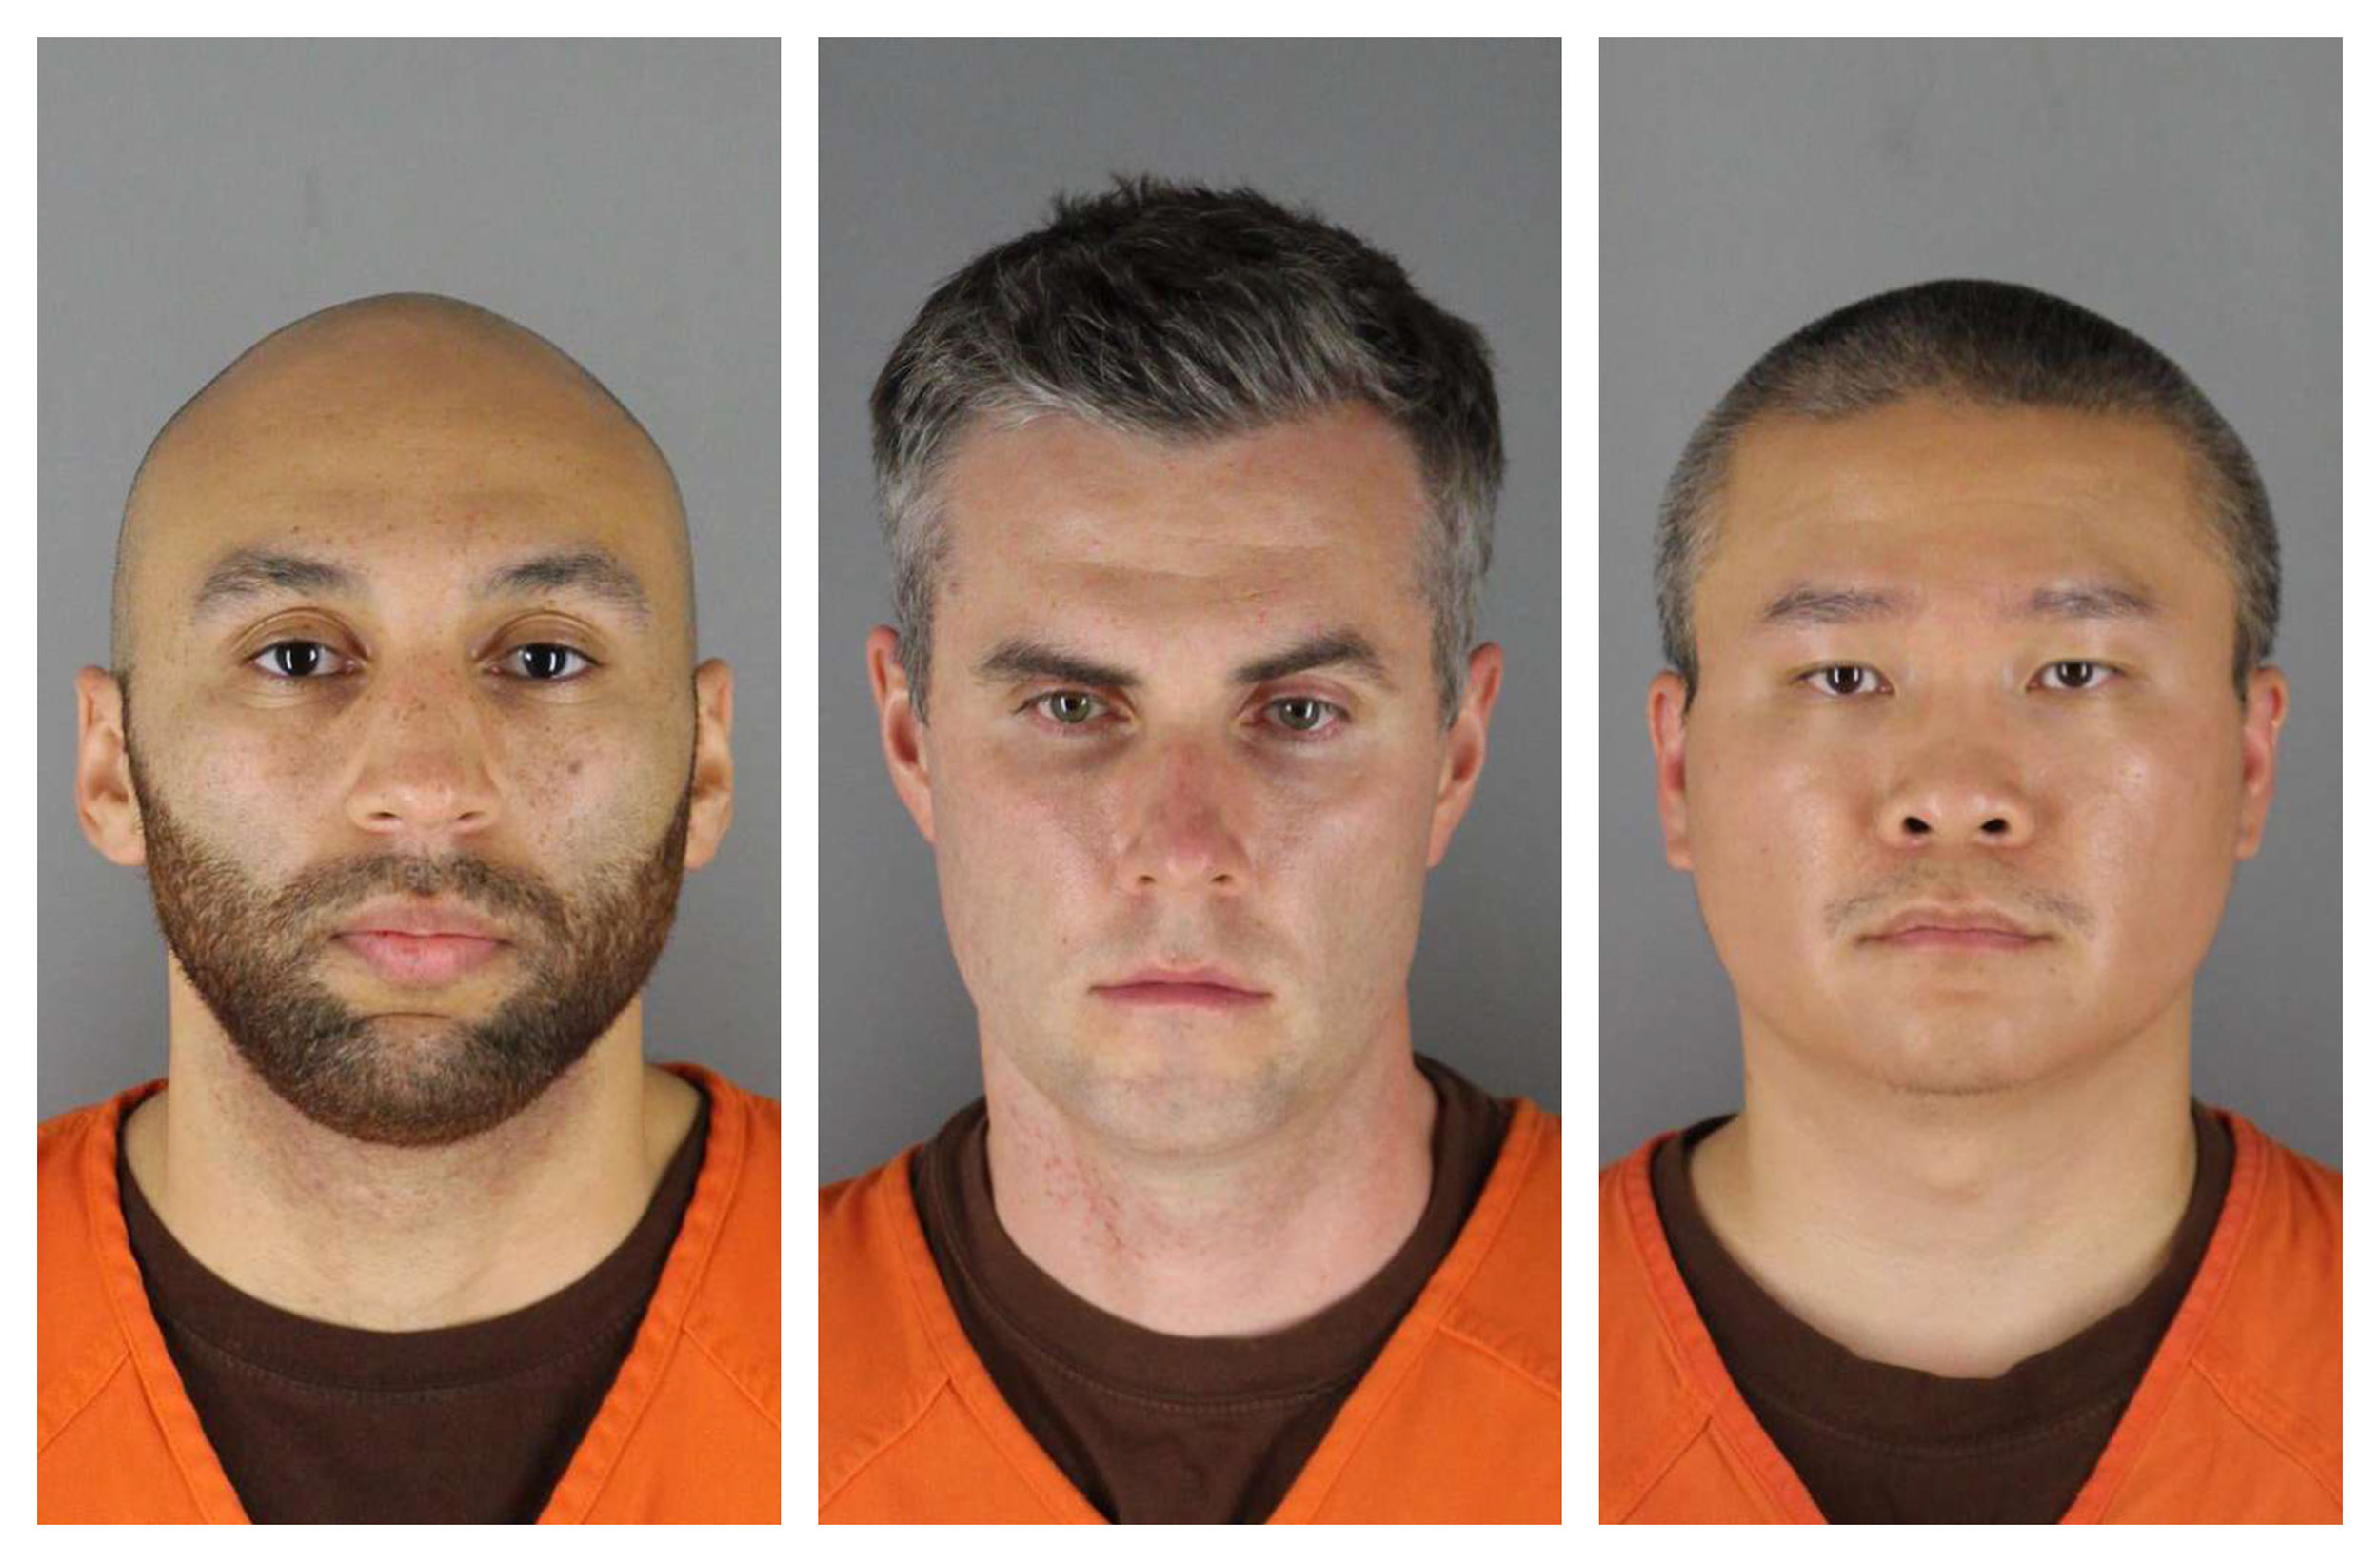 From left: J. Alexander Kueng, Thomas Lane and Tou Thao have been charged with aiding and abetting Derek Chauvin, who is charged with second-degree murder of George Floyd. Chauvin is charged with second-degree murder of George Floyd, a black man who died after being restrained by the Minneapolis police officers on May 25